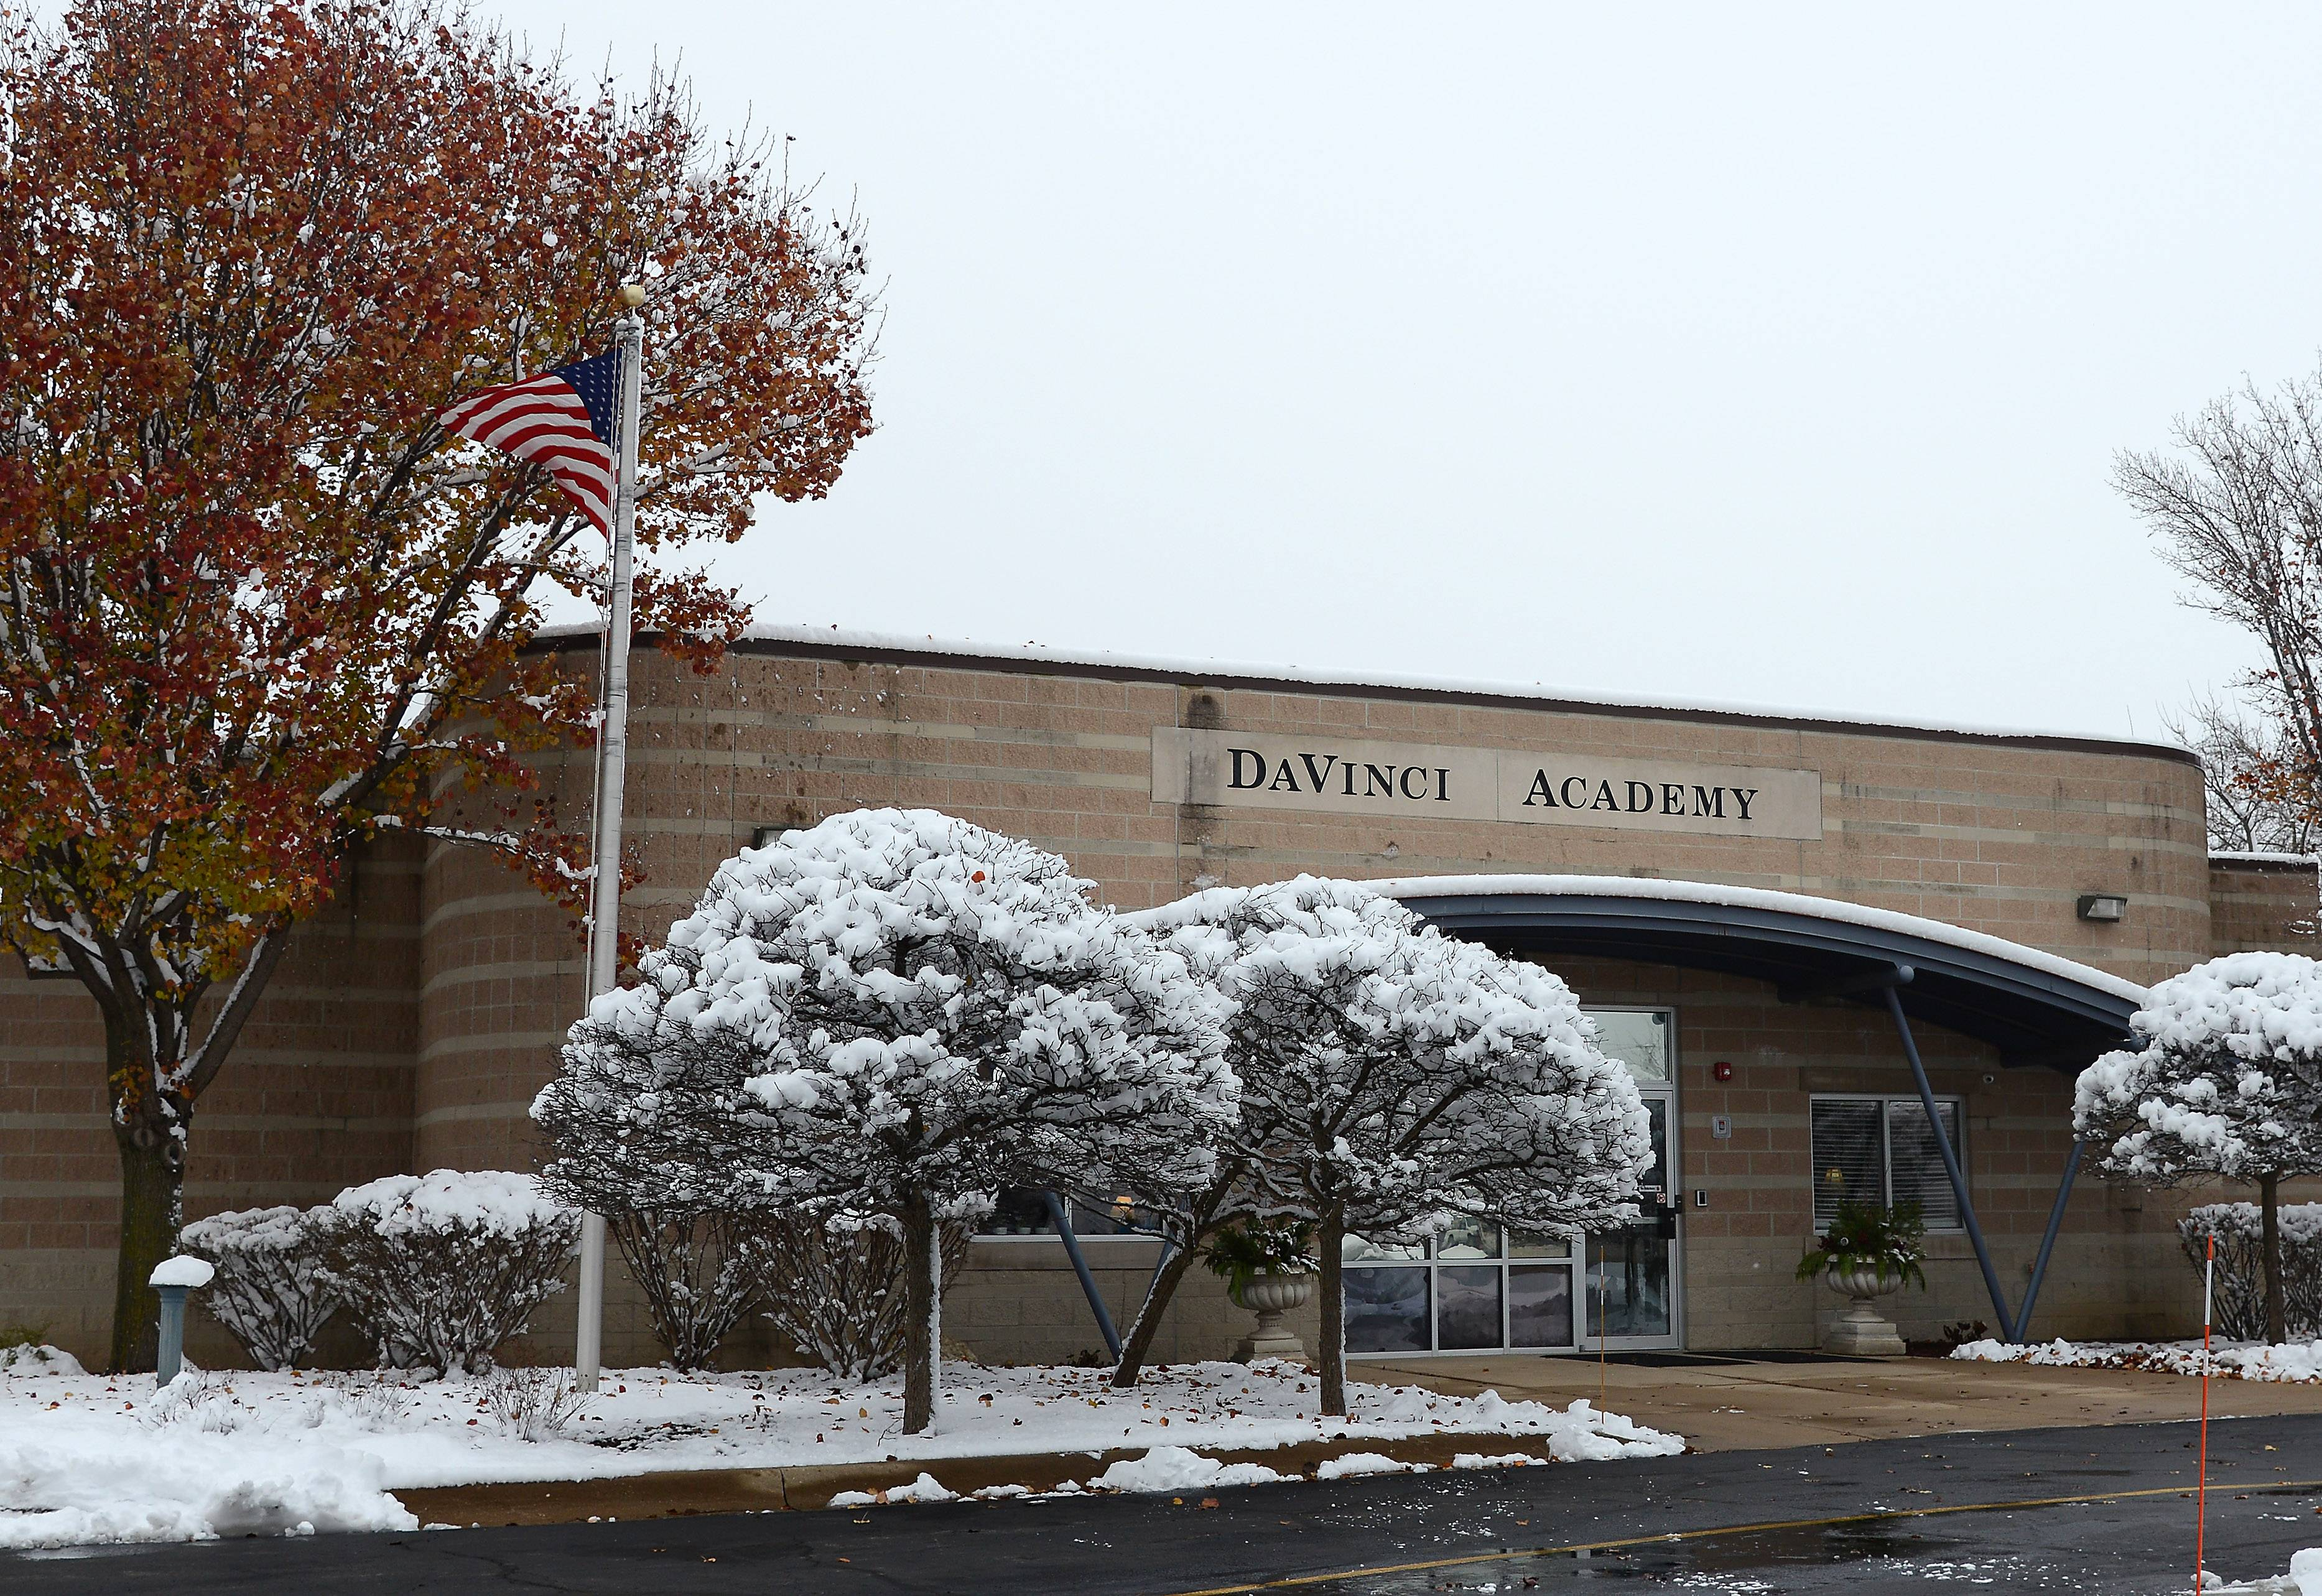 Da Vinci Academy in Elgin is closing at the end of this school year due to enrollment declines, officials said. The school has 81 students enrolled this year.